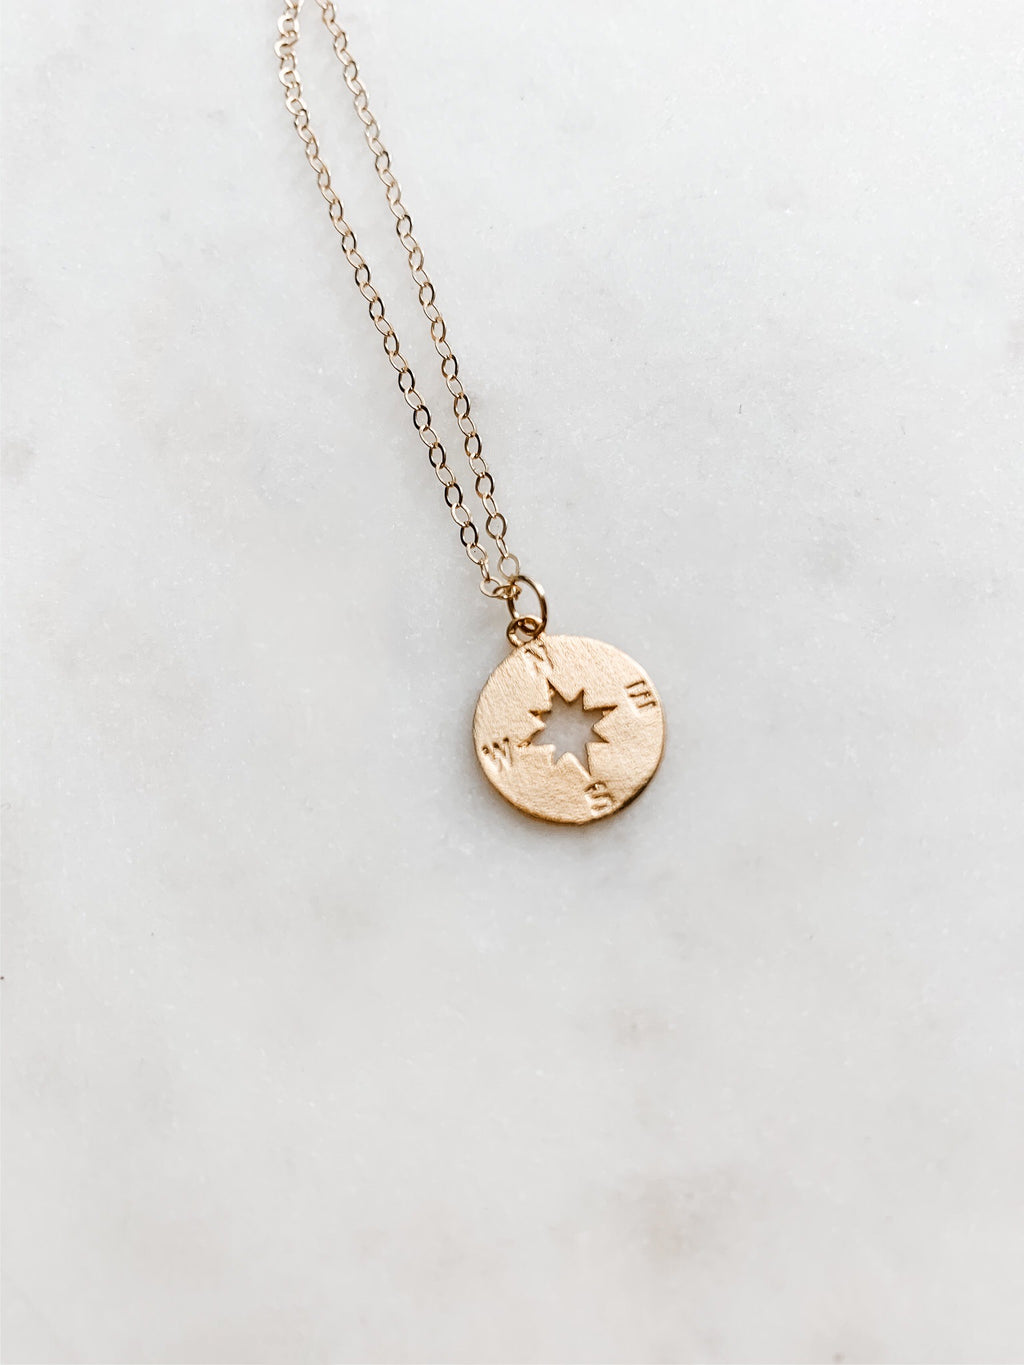 Compass Necklace - The Pretty Eclectic